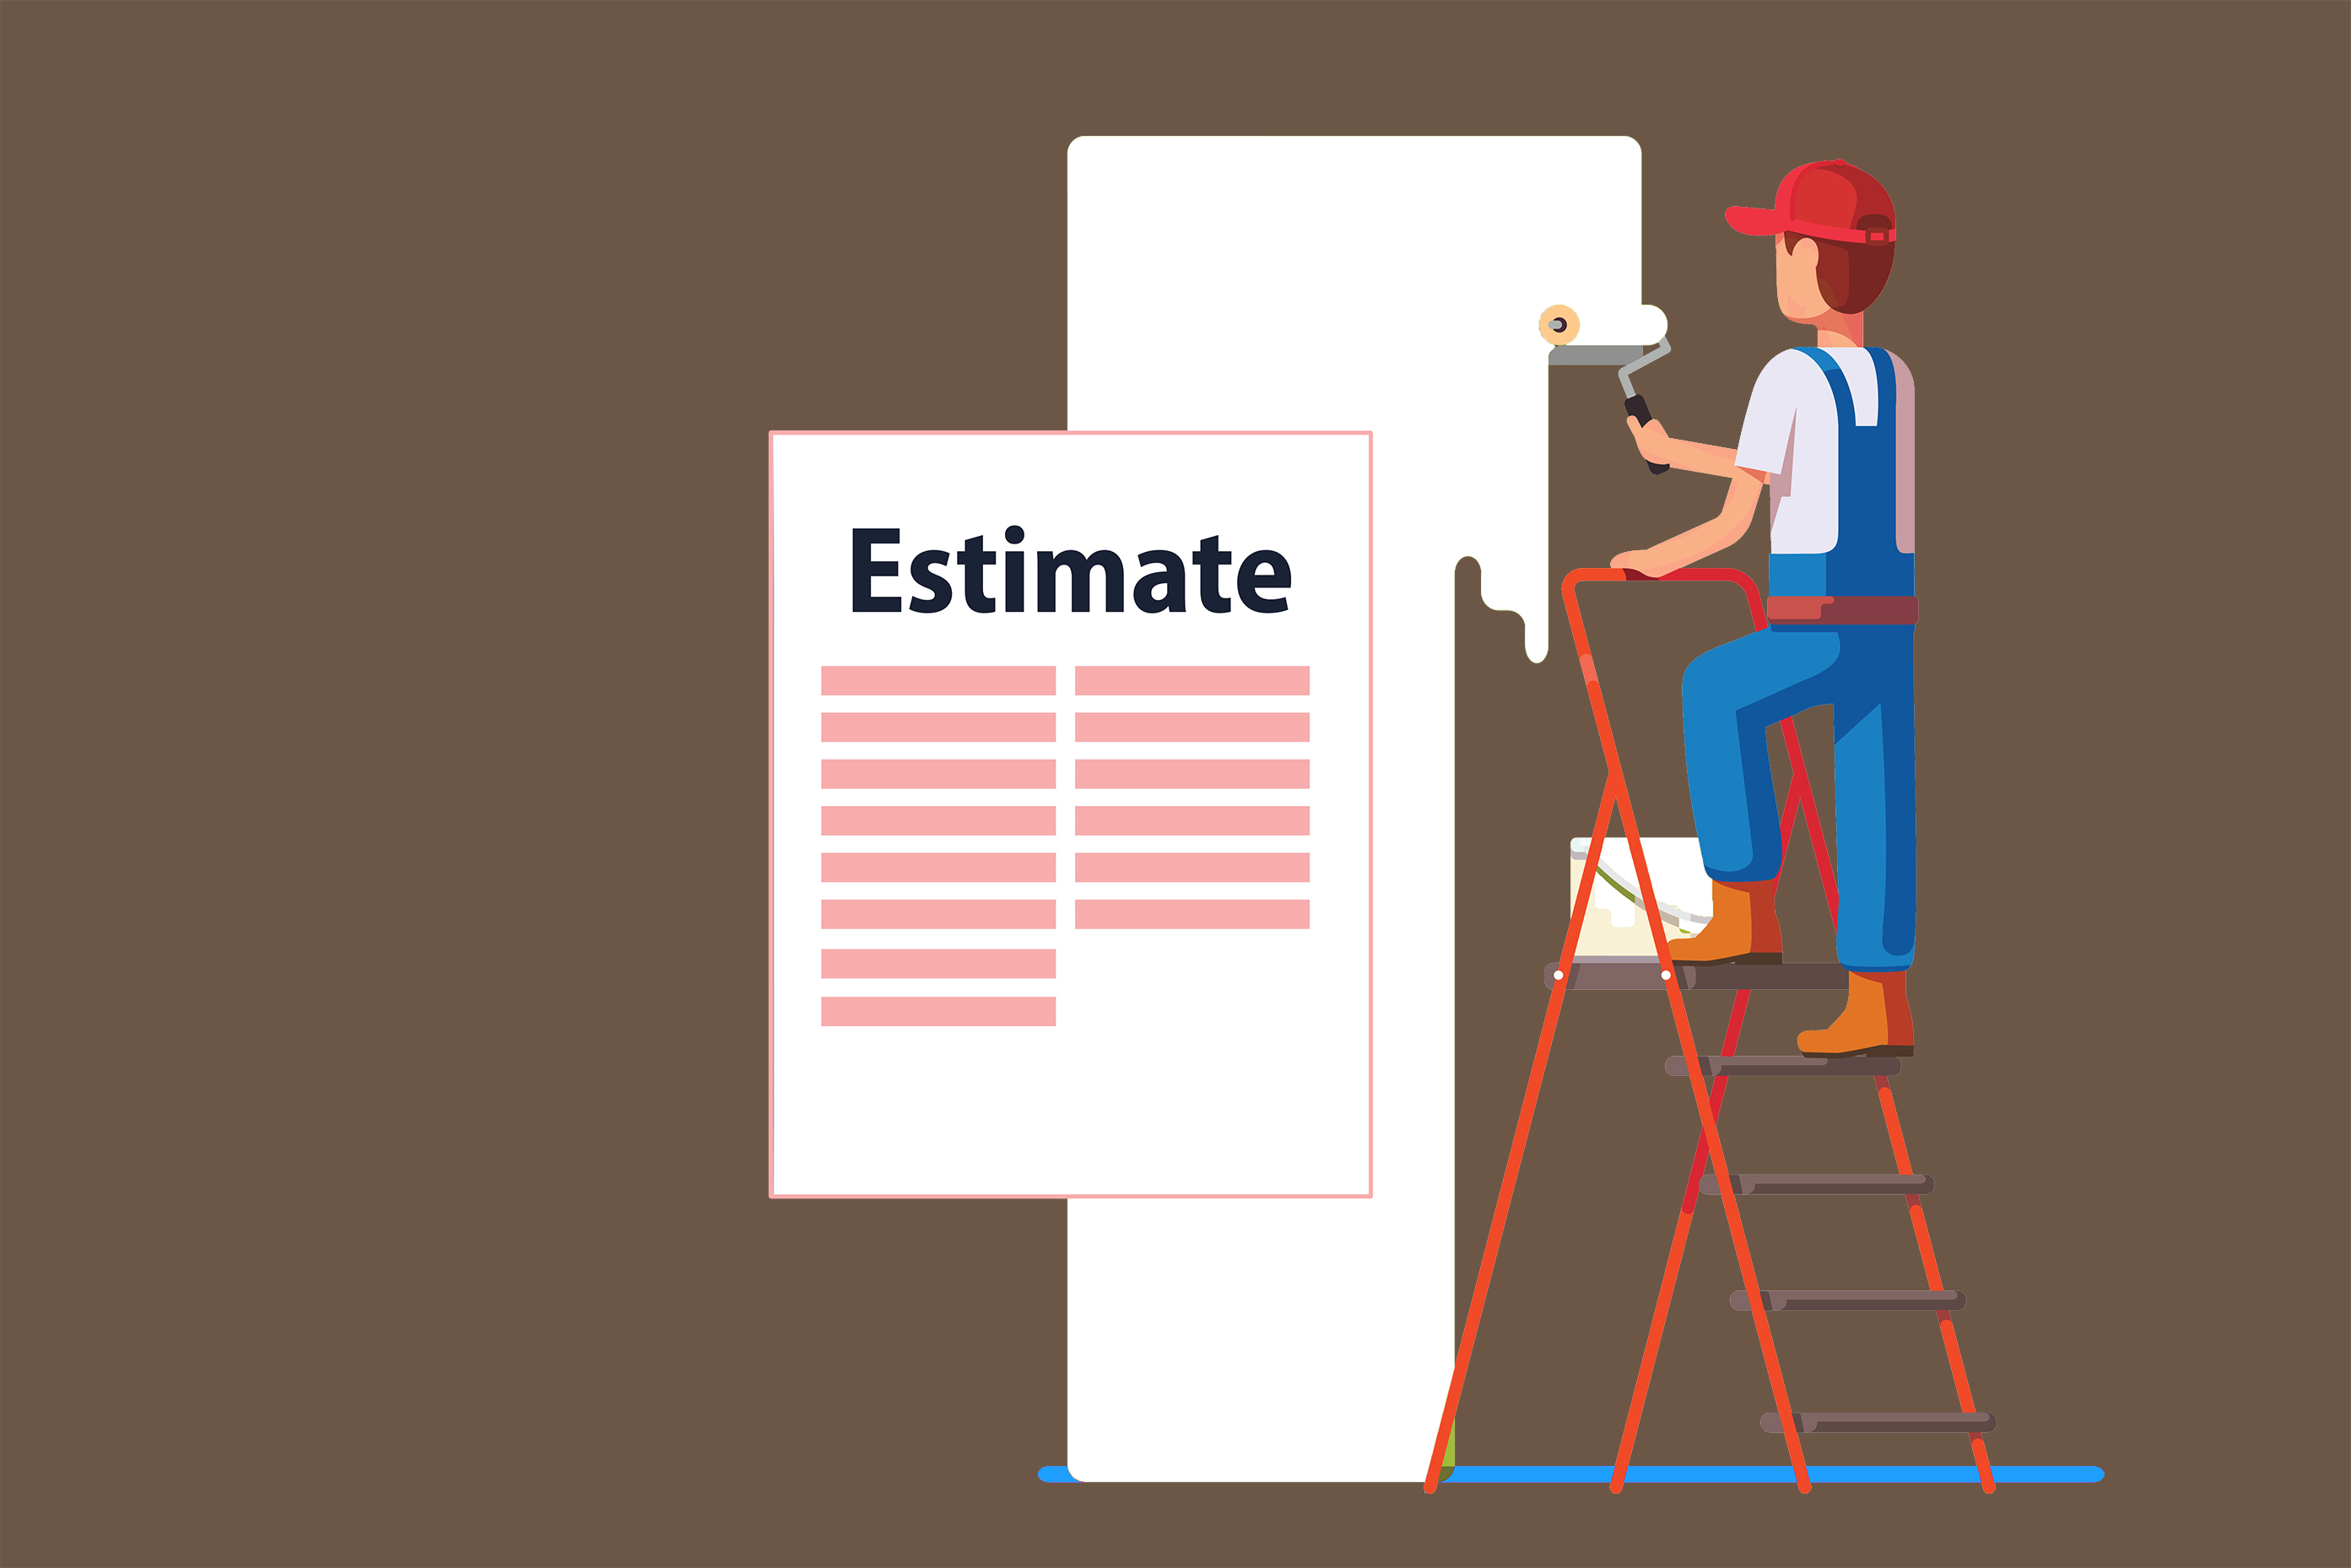 7 Steps to Complete a Painting Estimate